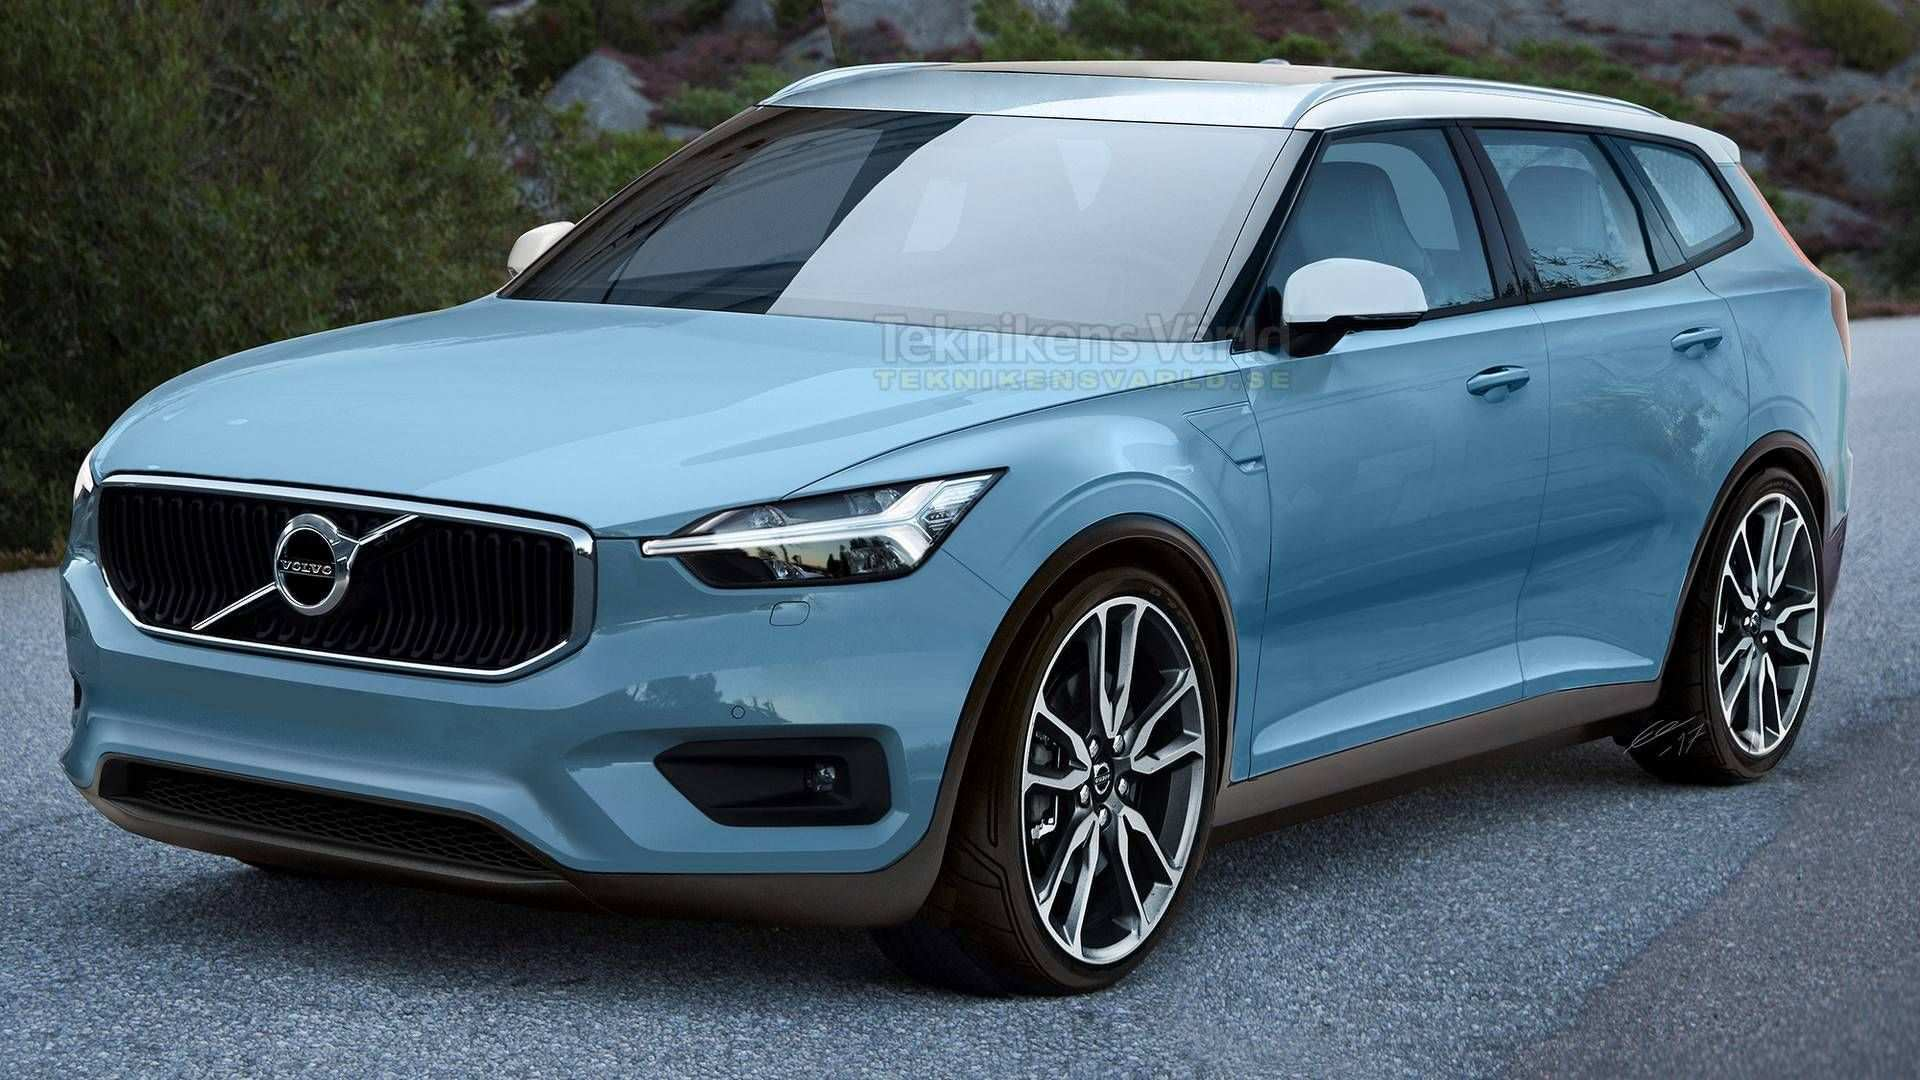 36 All New Volvo Range 2020 Ratings for Volvo Range 2020